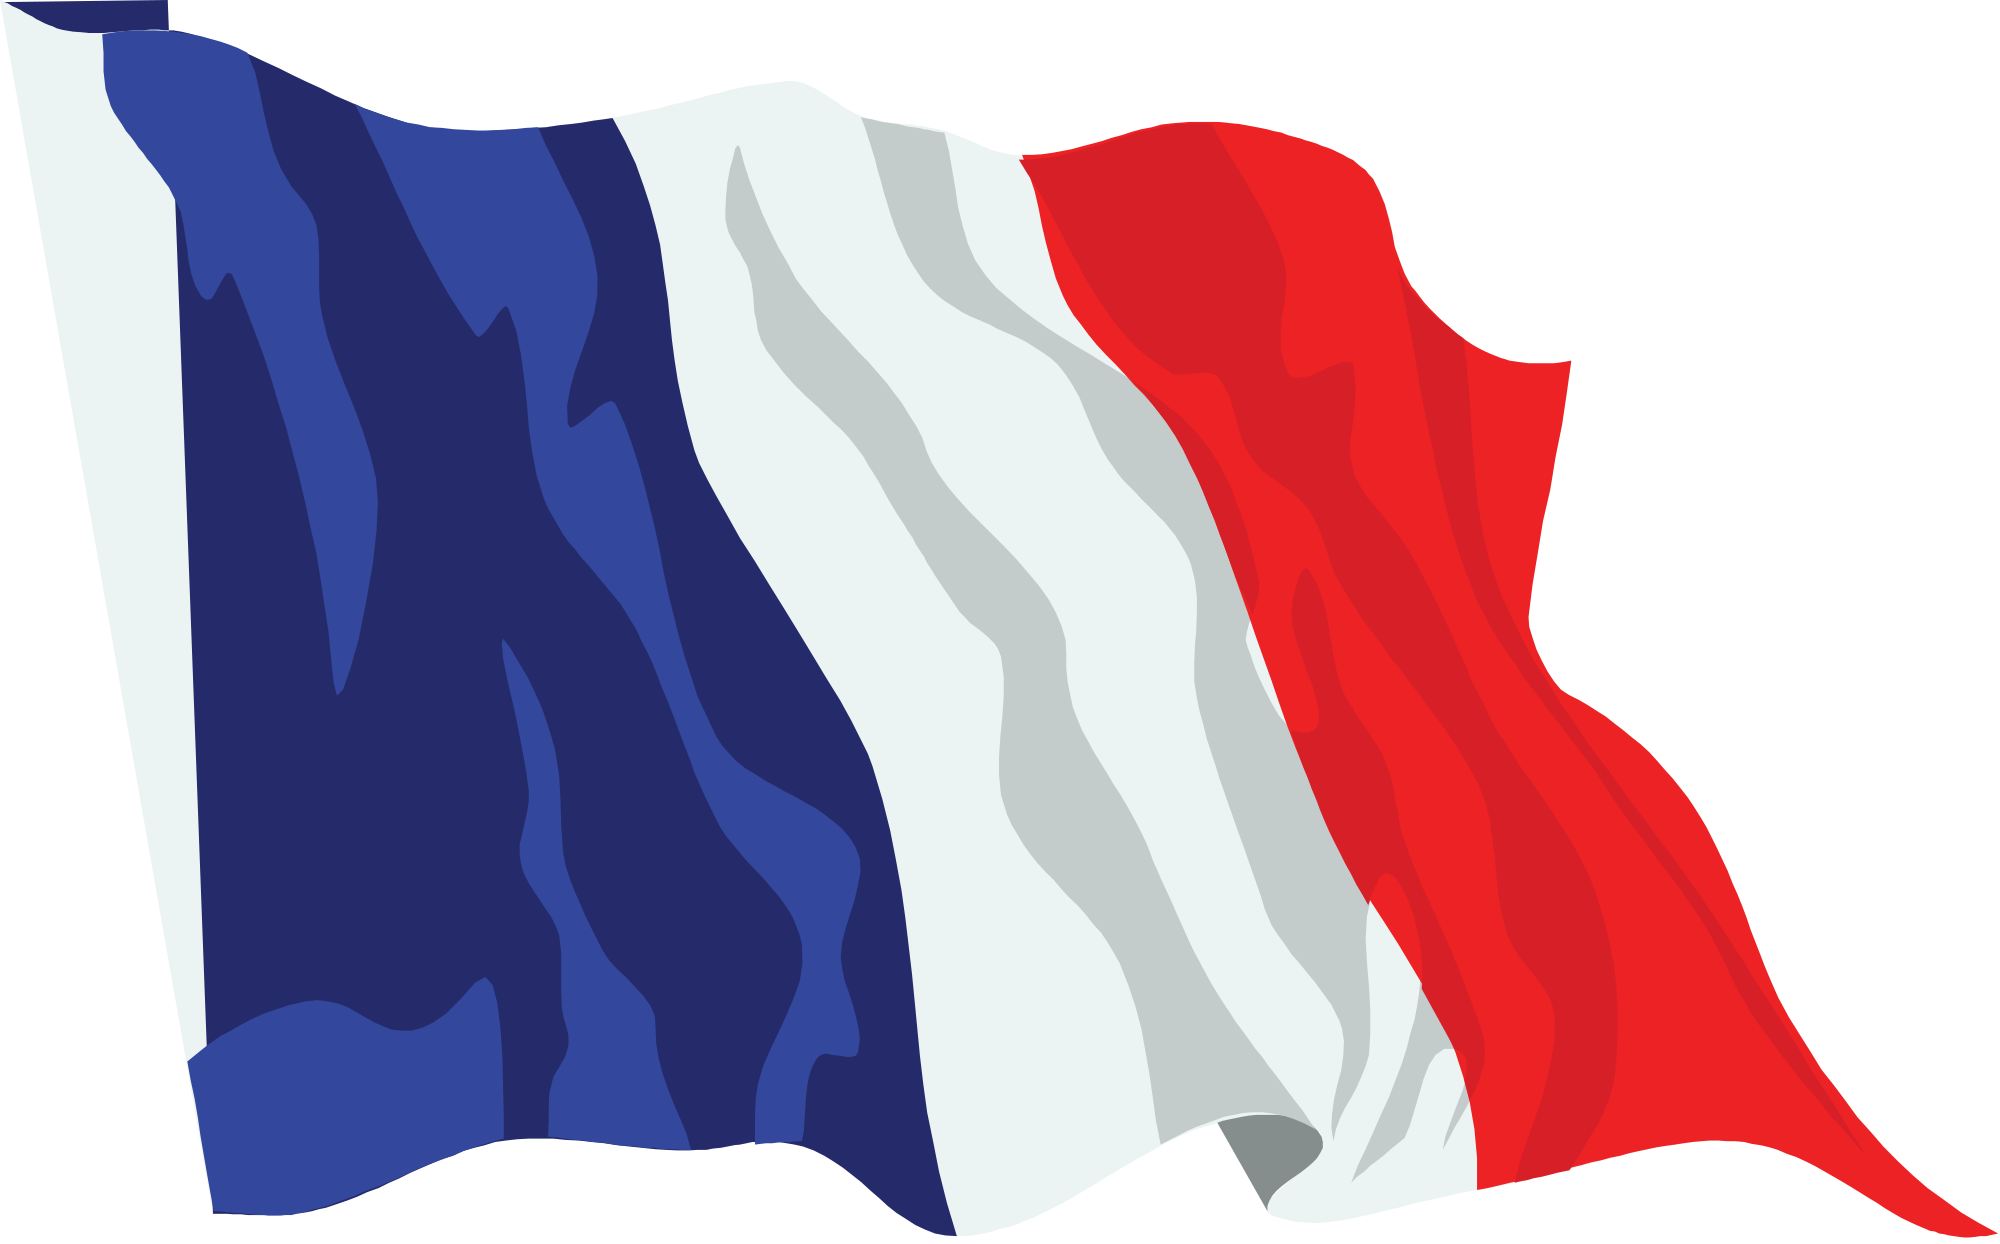 download france flag picture hq png image freepngimg clip art cribbage clip art crappie